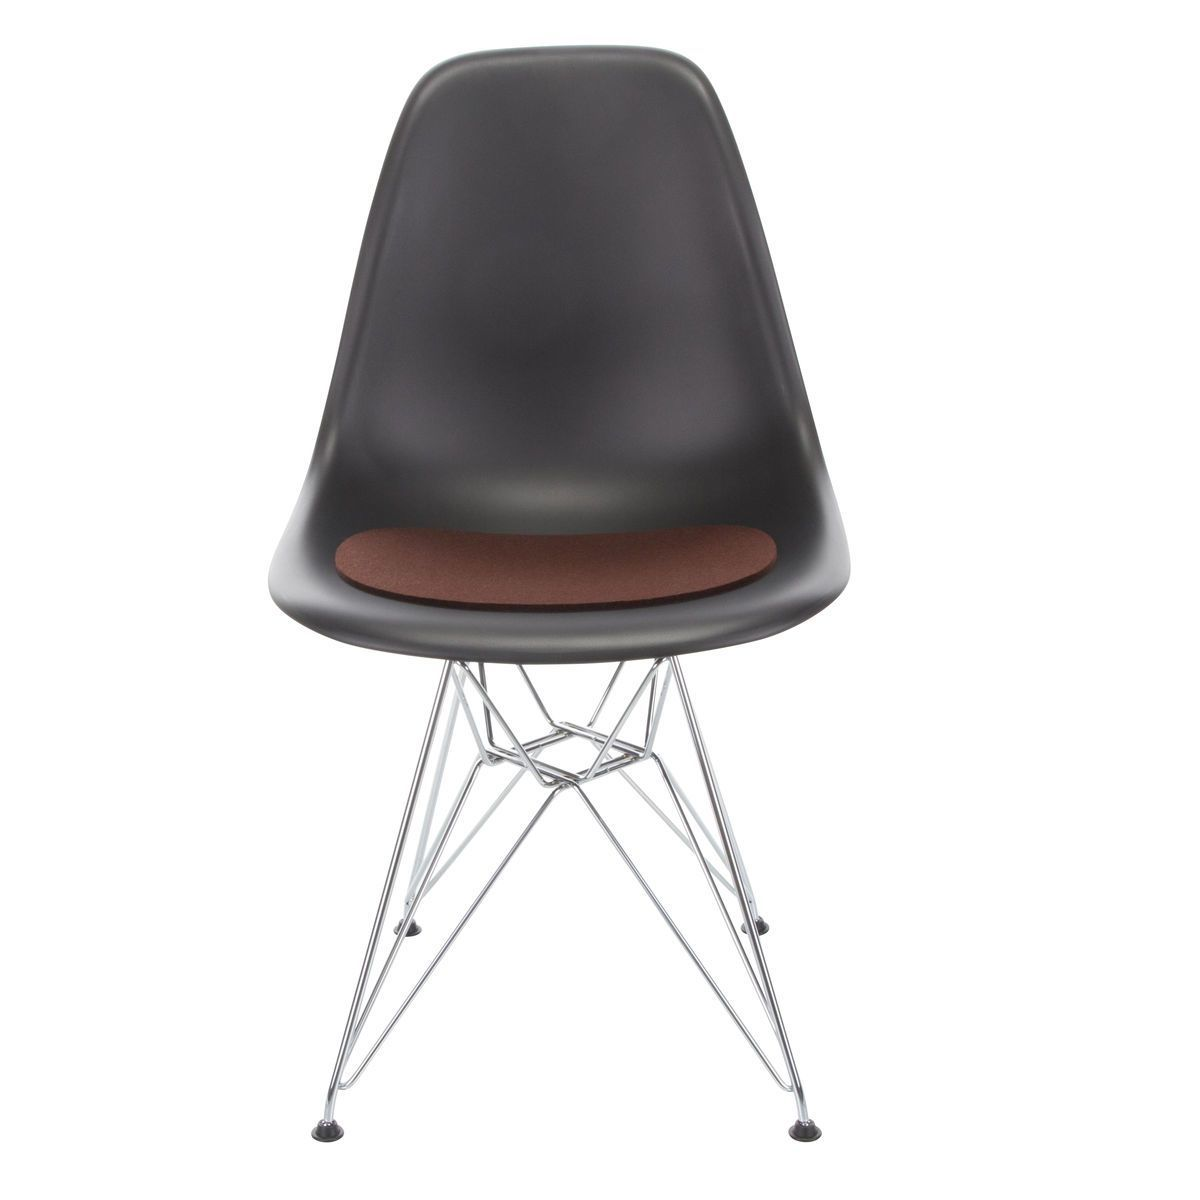 sitzauflage eames sidechair antirutsch hey sign sitzkissen auflagen textilien. Black Bedroom Furniture Sets. Home Design Ideas